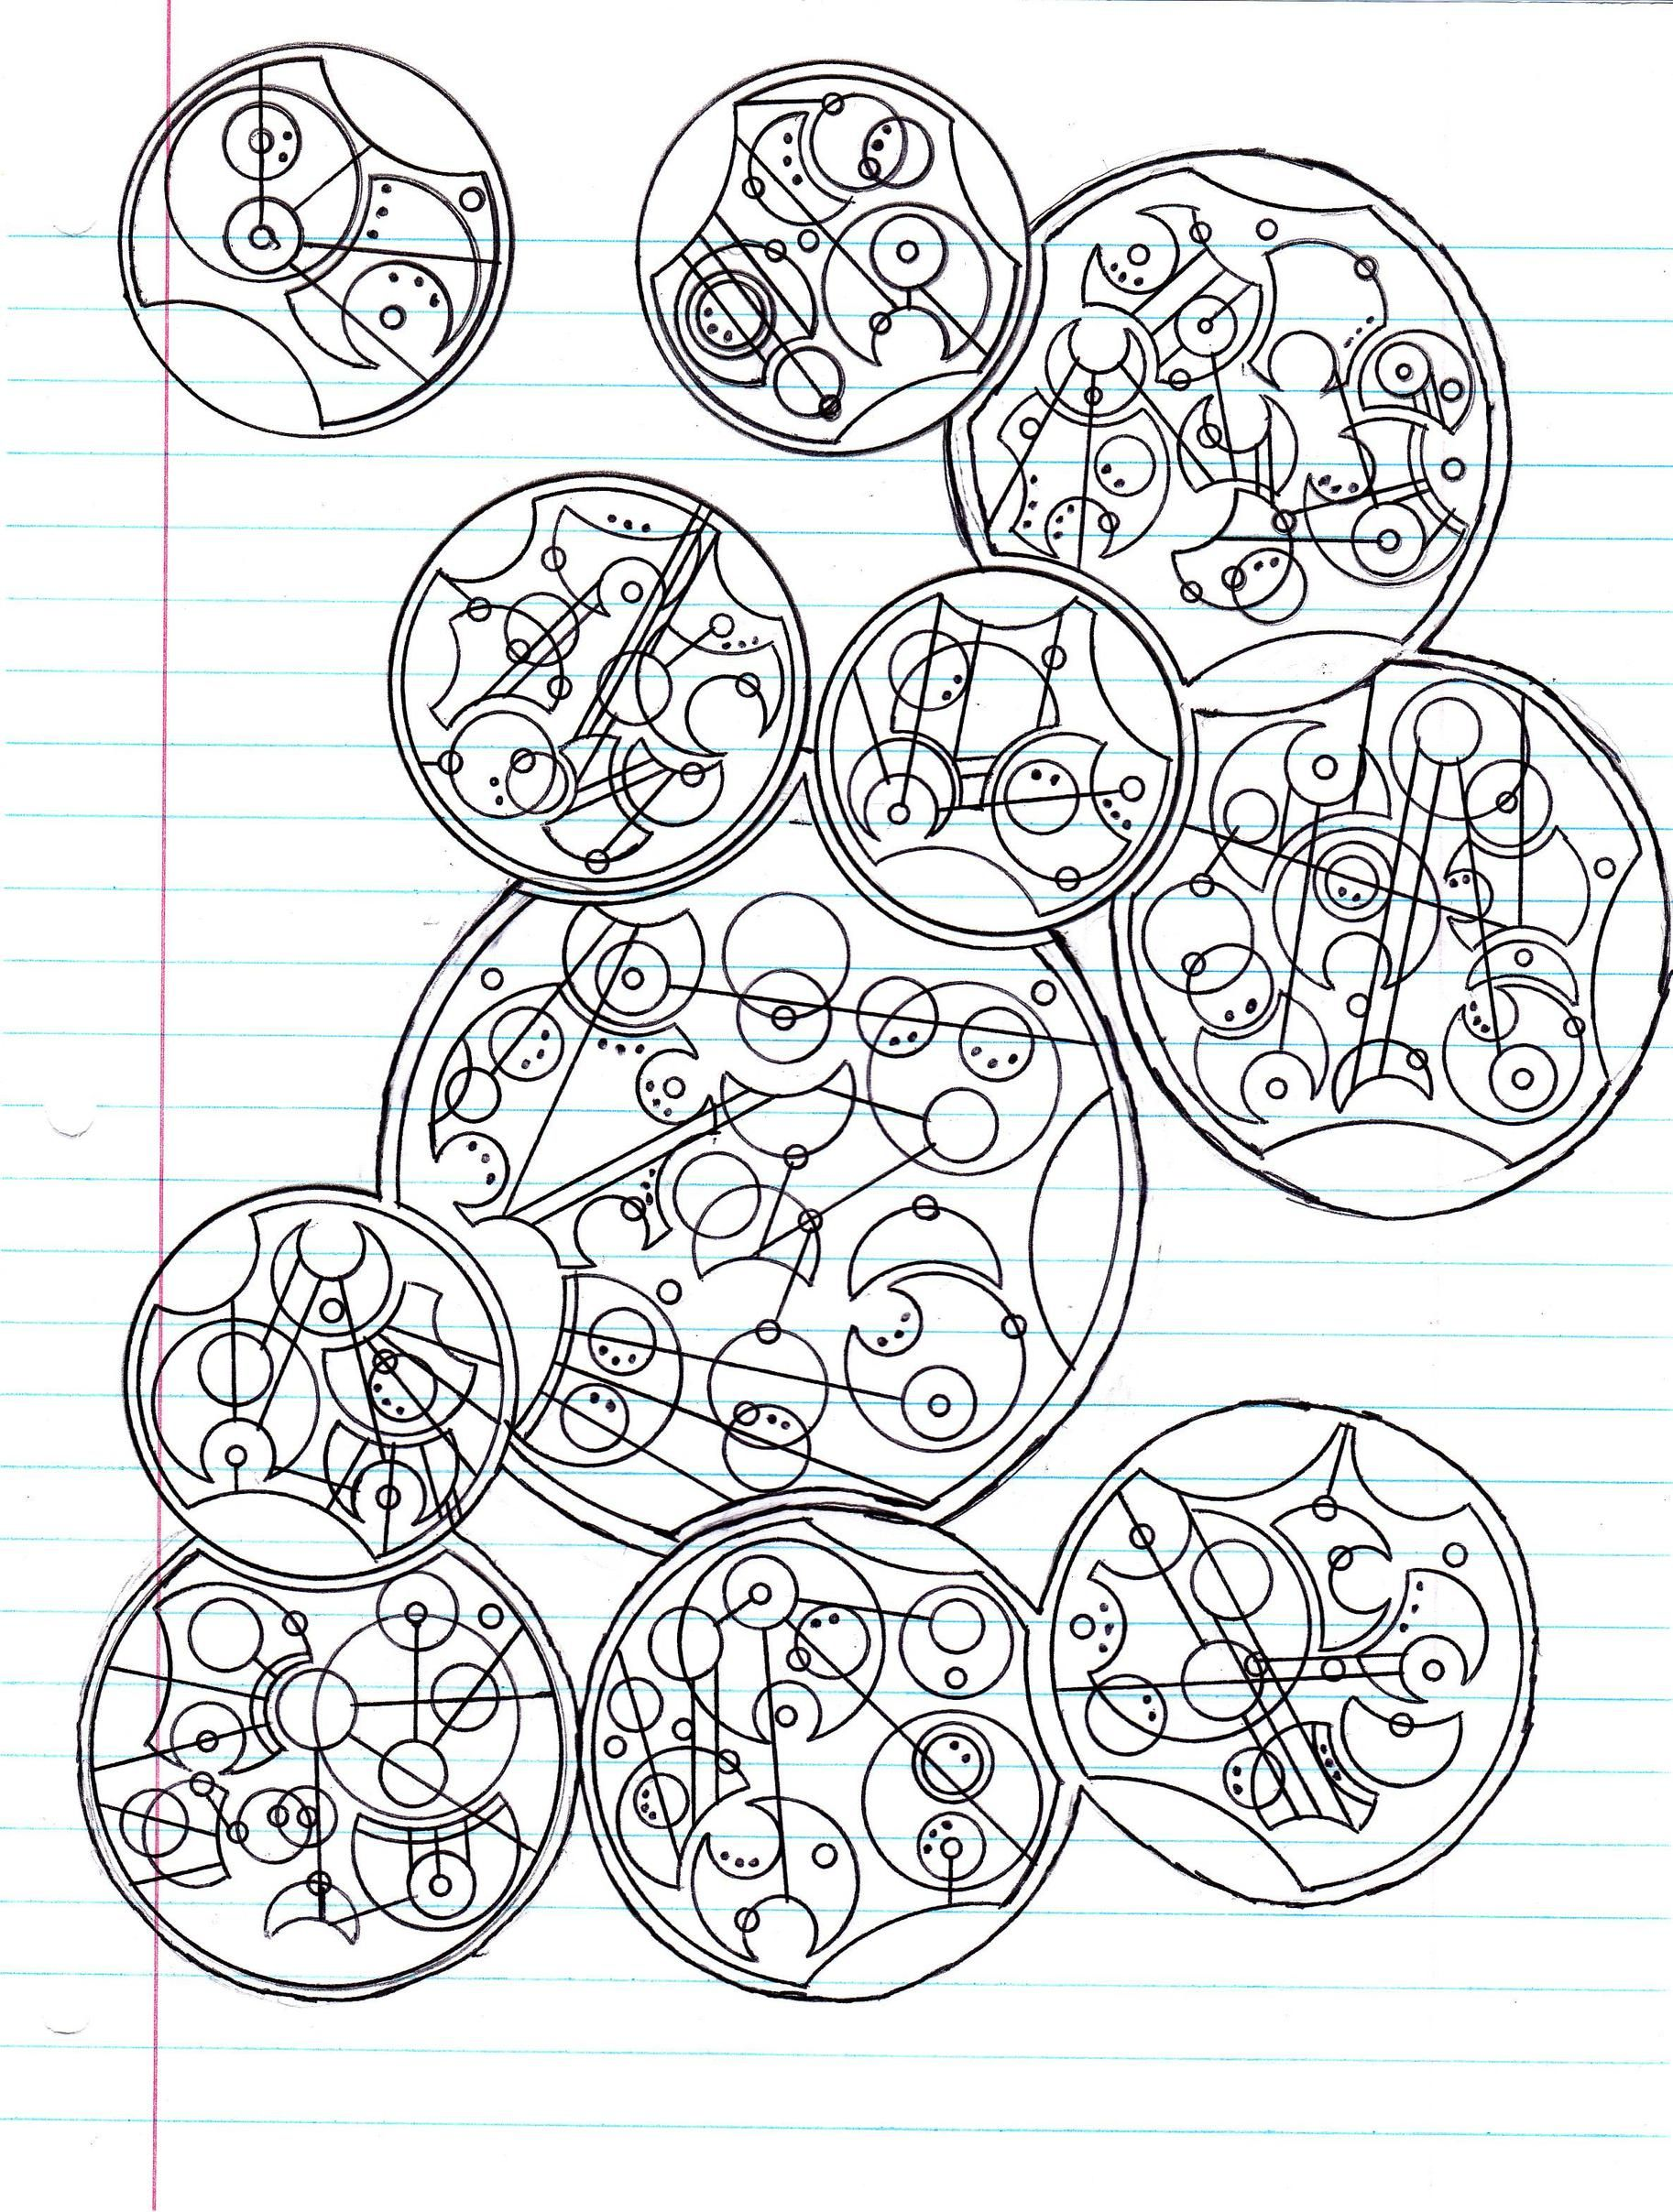 A Gallifreyan Message I Made For Friend In The Navy